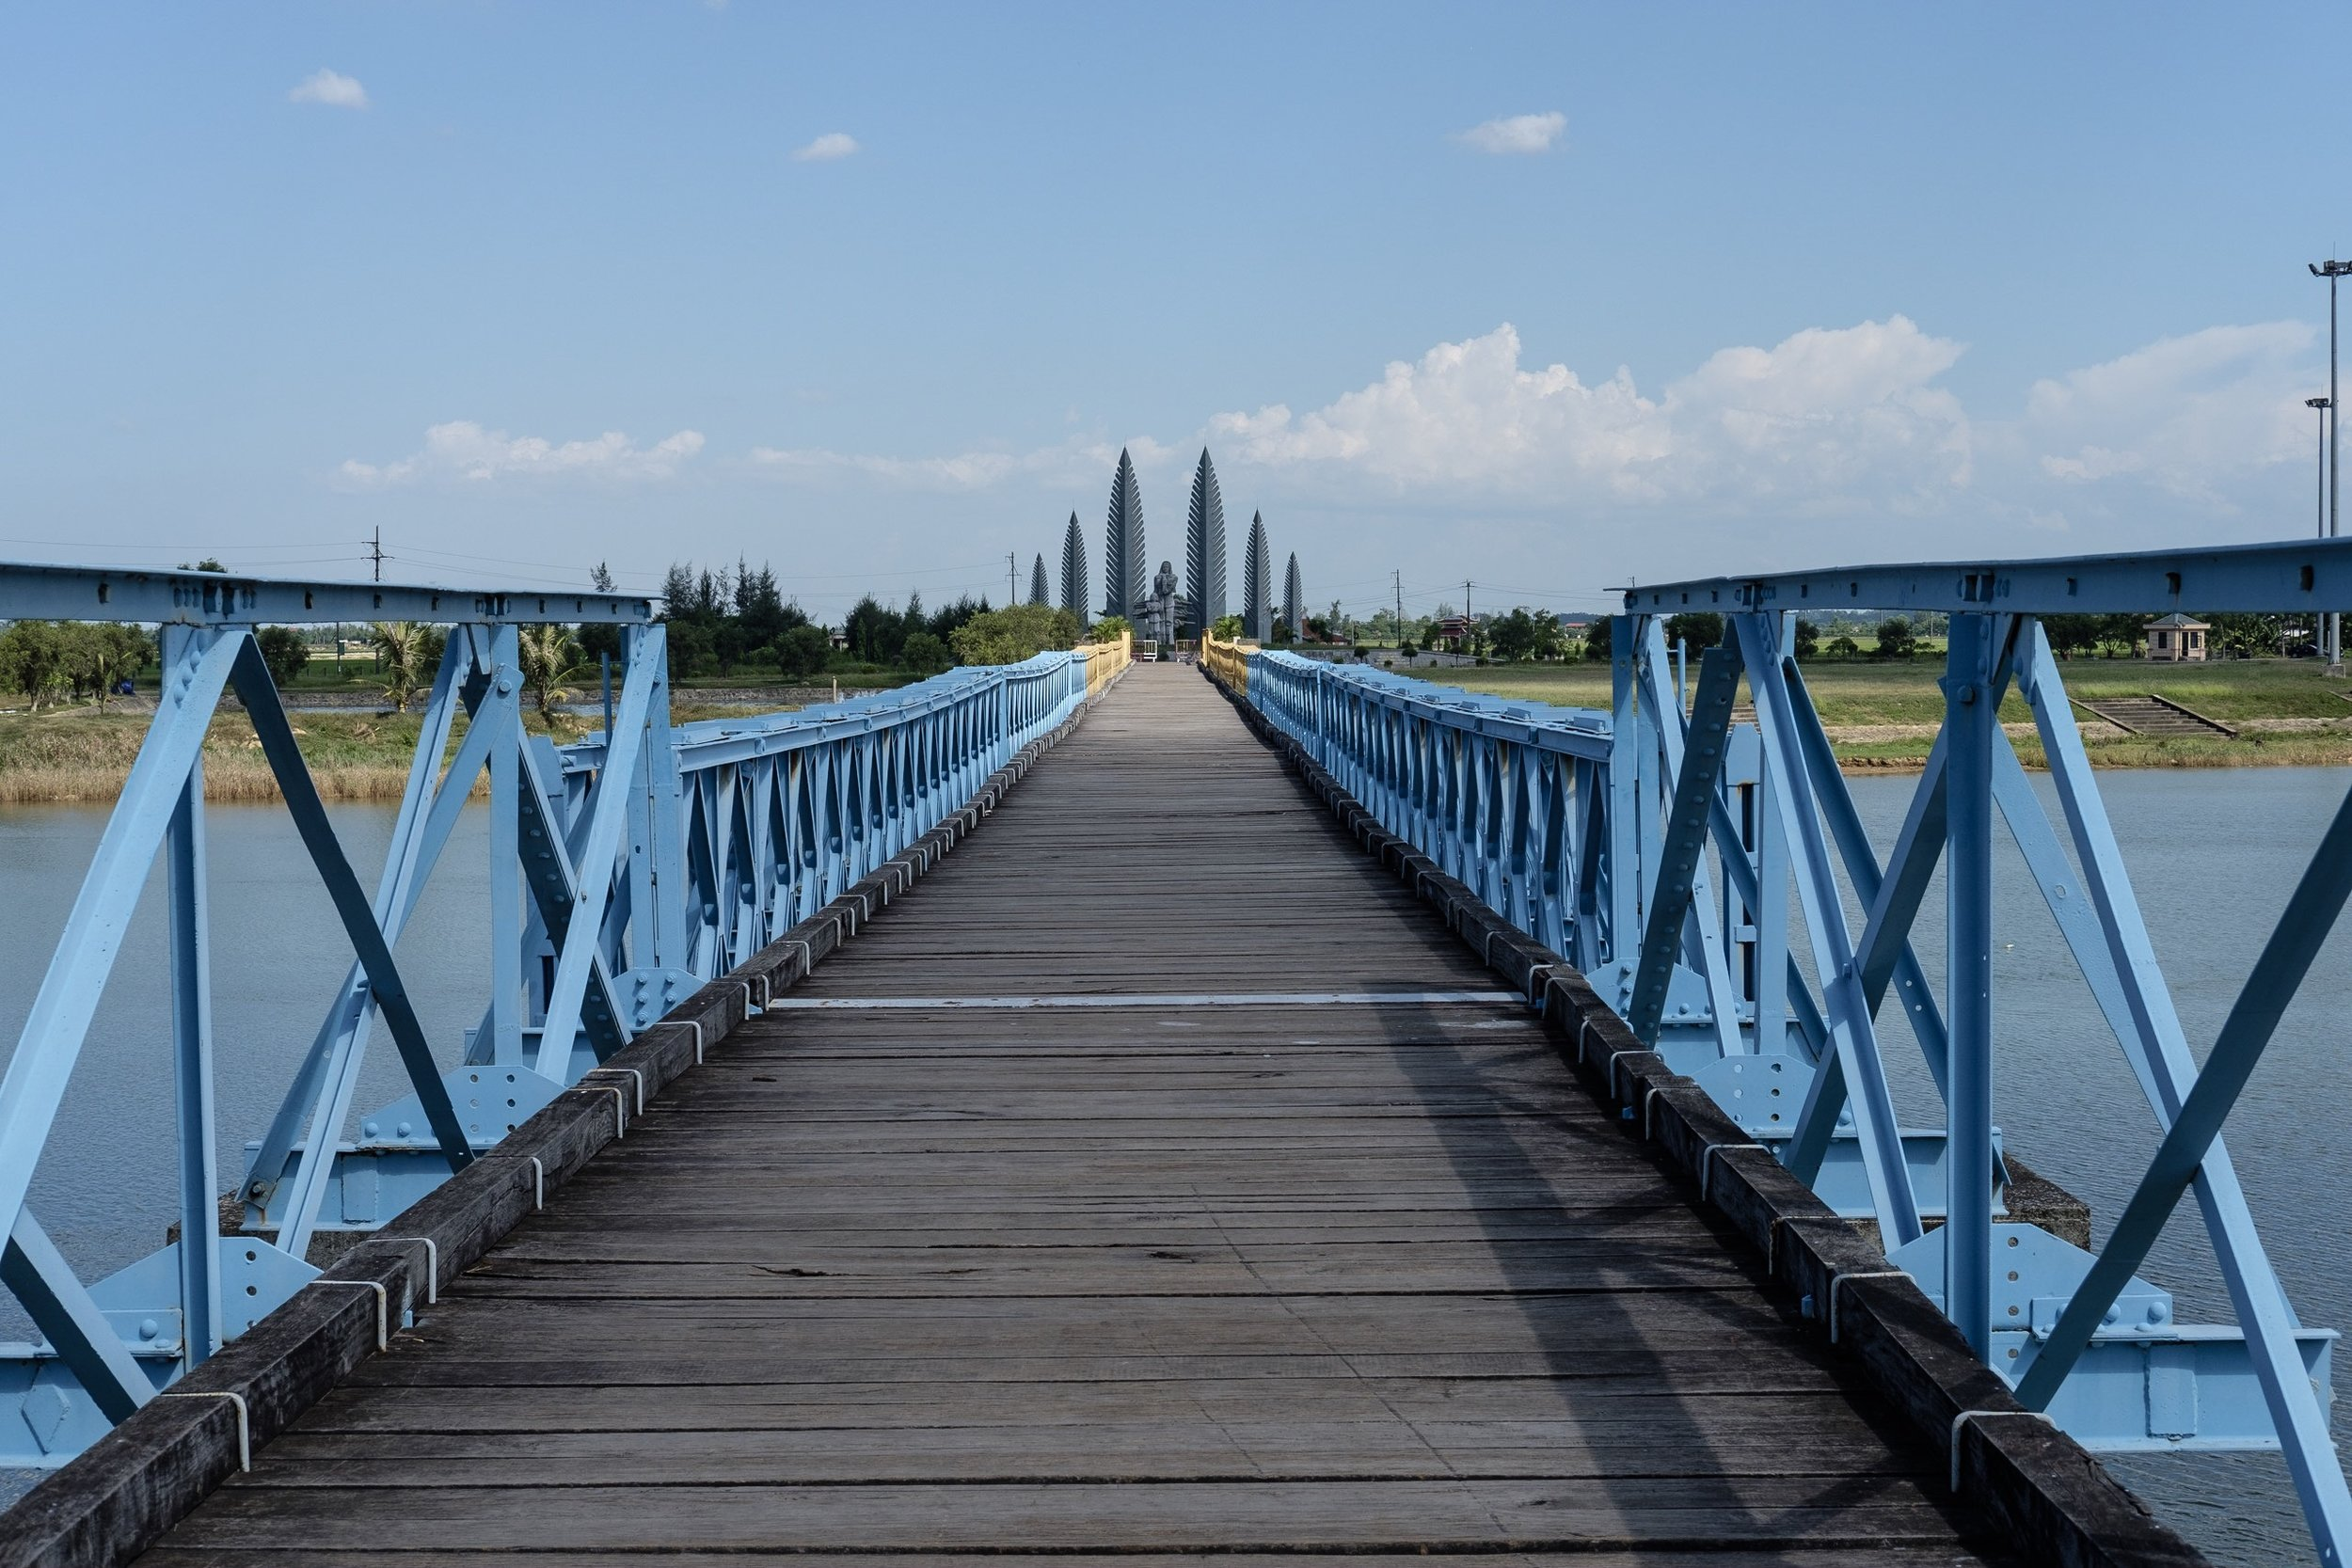 D: Hien Luong bridge, the northern blue and southern yellow parts symbolizing a mutual desire for reunification.